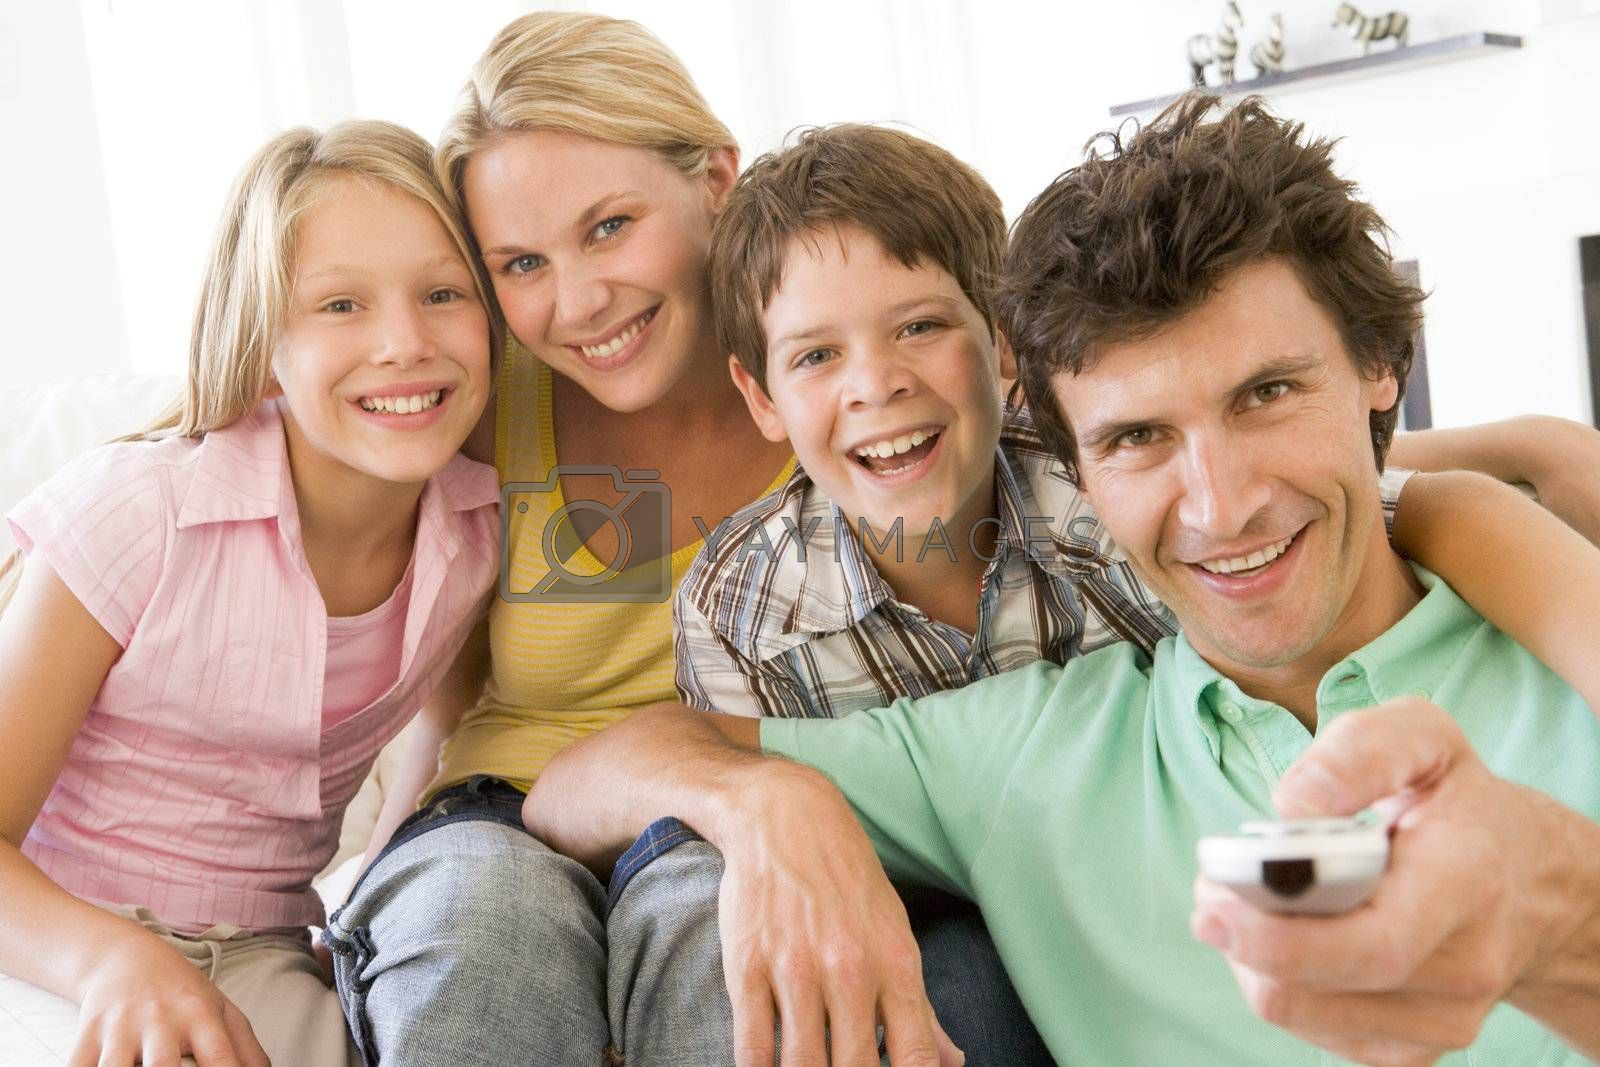 Family in living room with remote control smiling by MonkeyBusiness